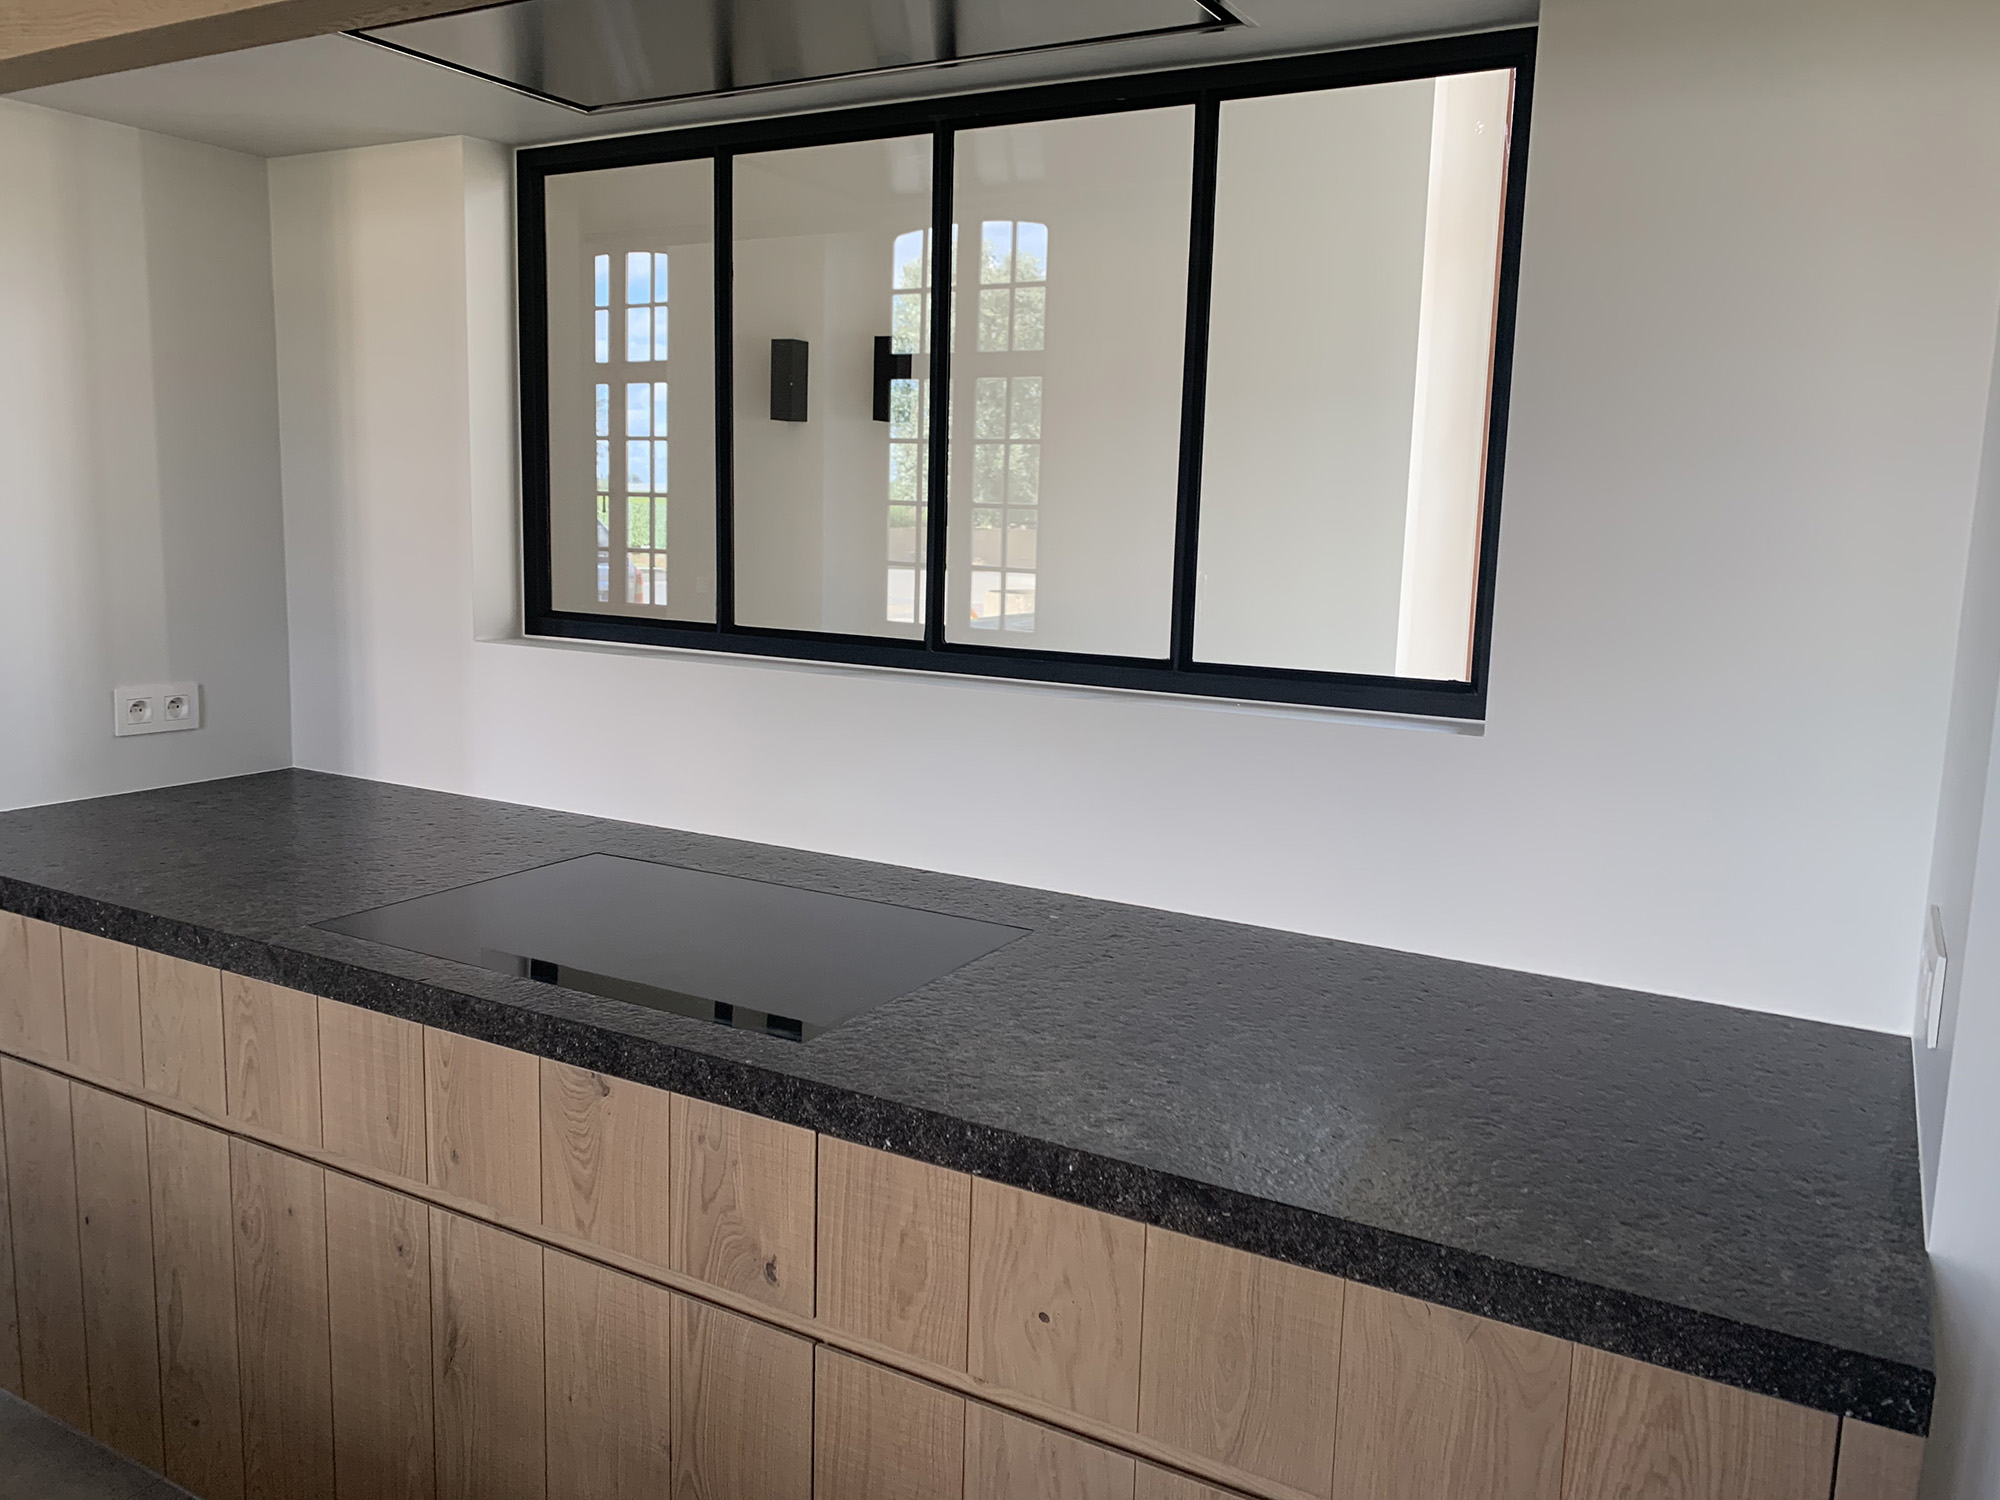 Belgian Blue Stone - Kitchen - worktop Flamed and brushed - Conception